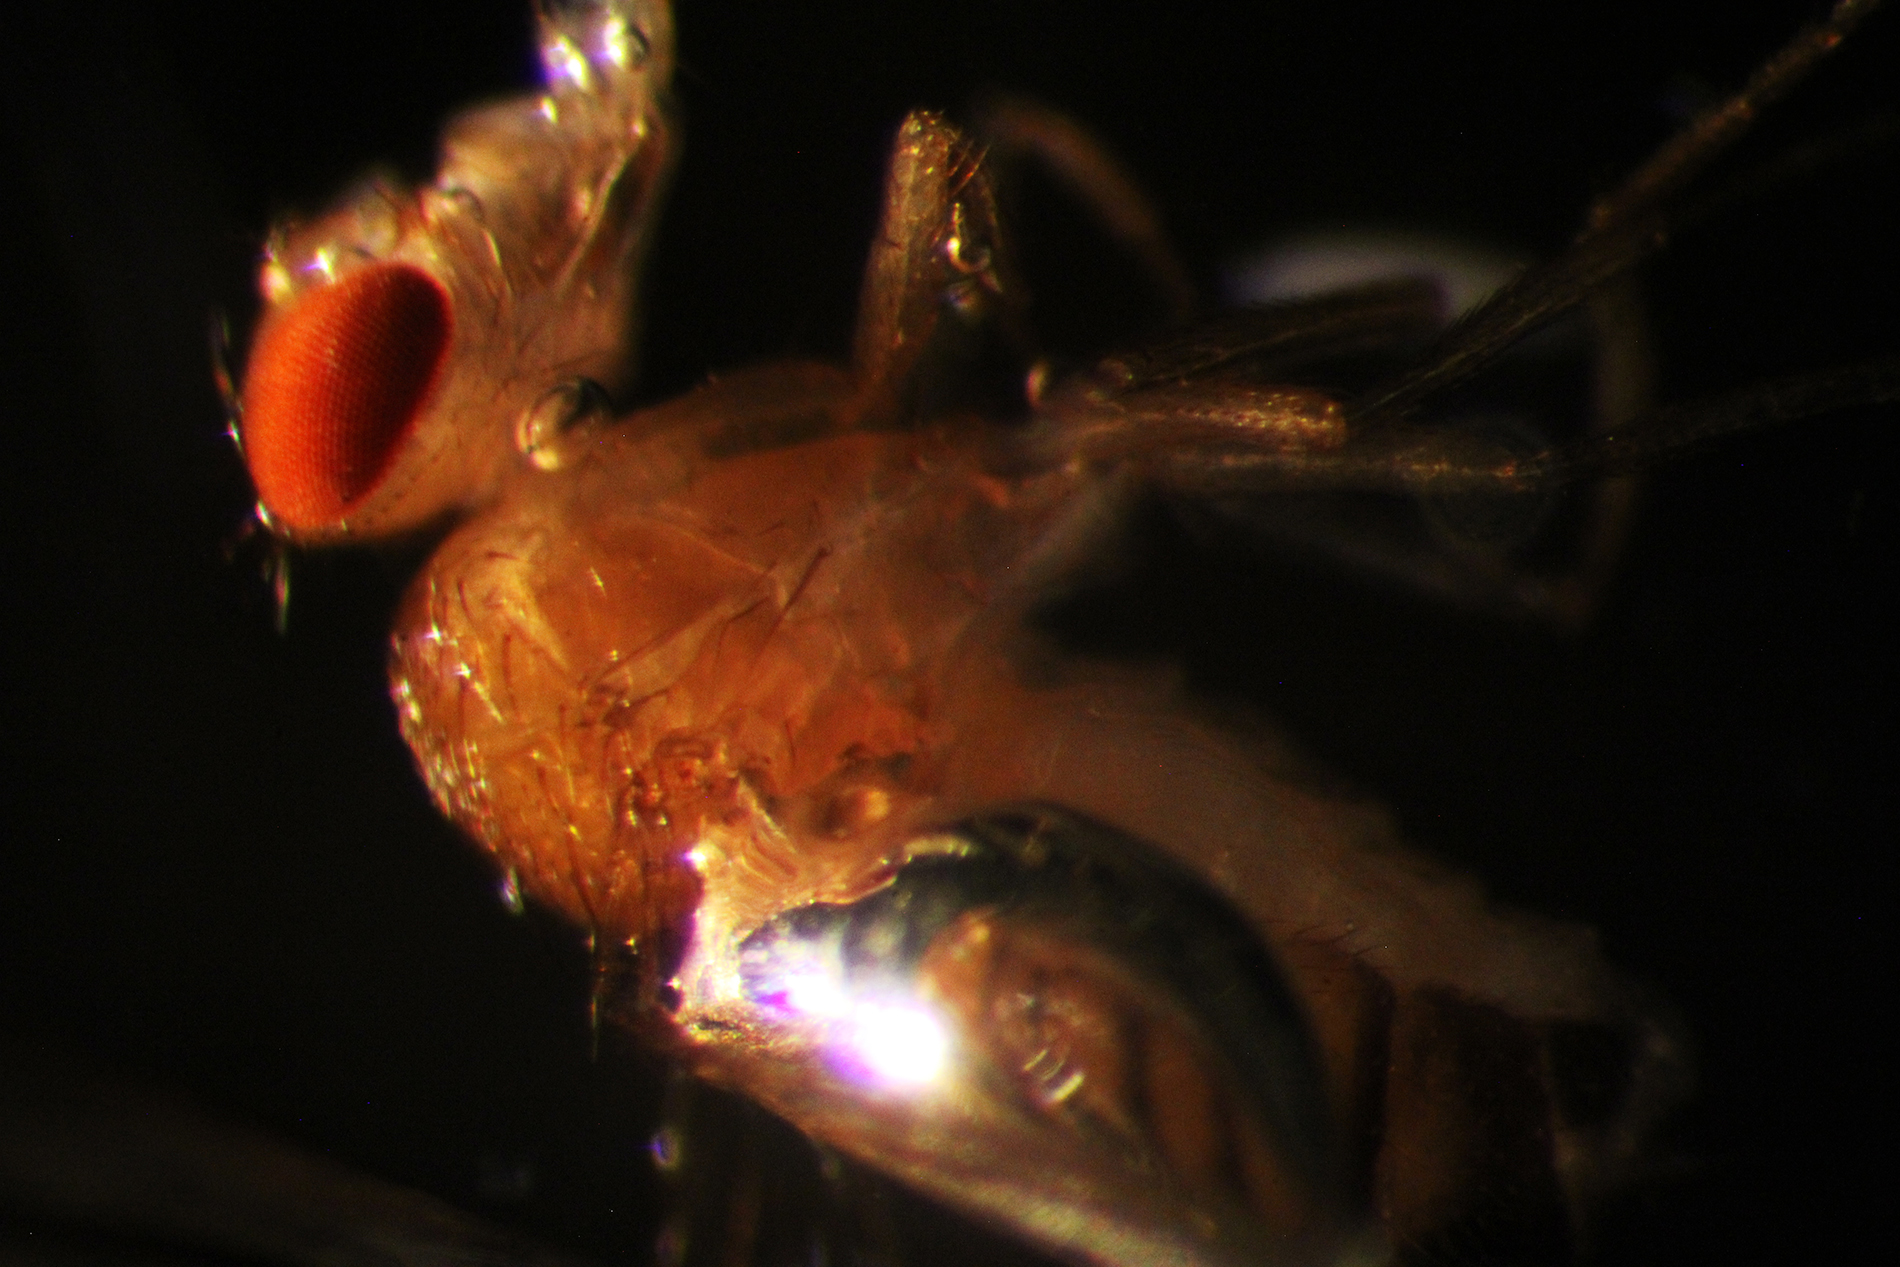 a close-up of a fruit fly under a dissecting microscope